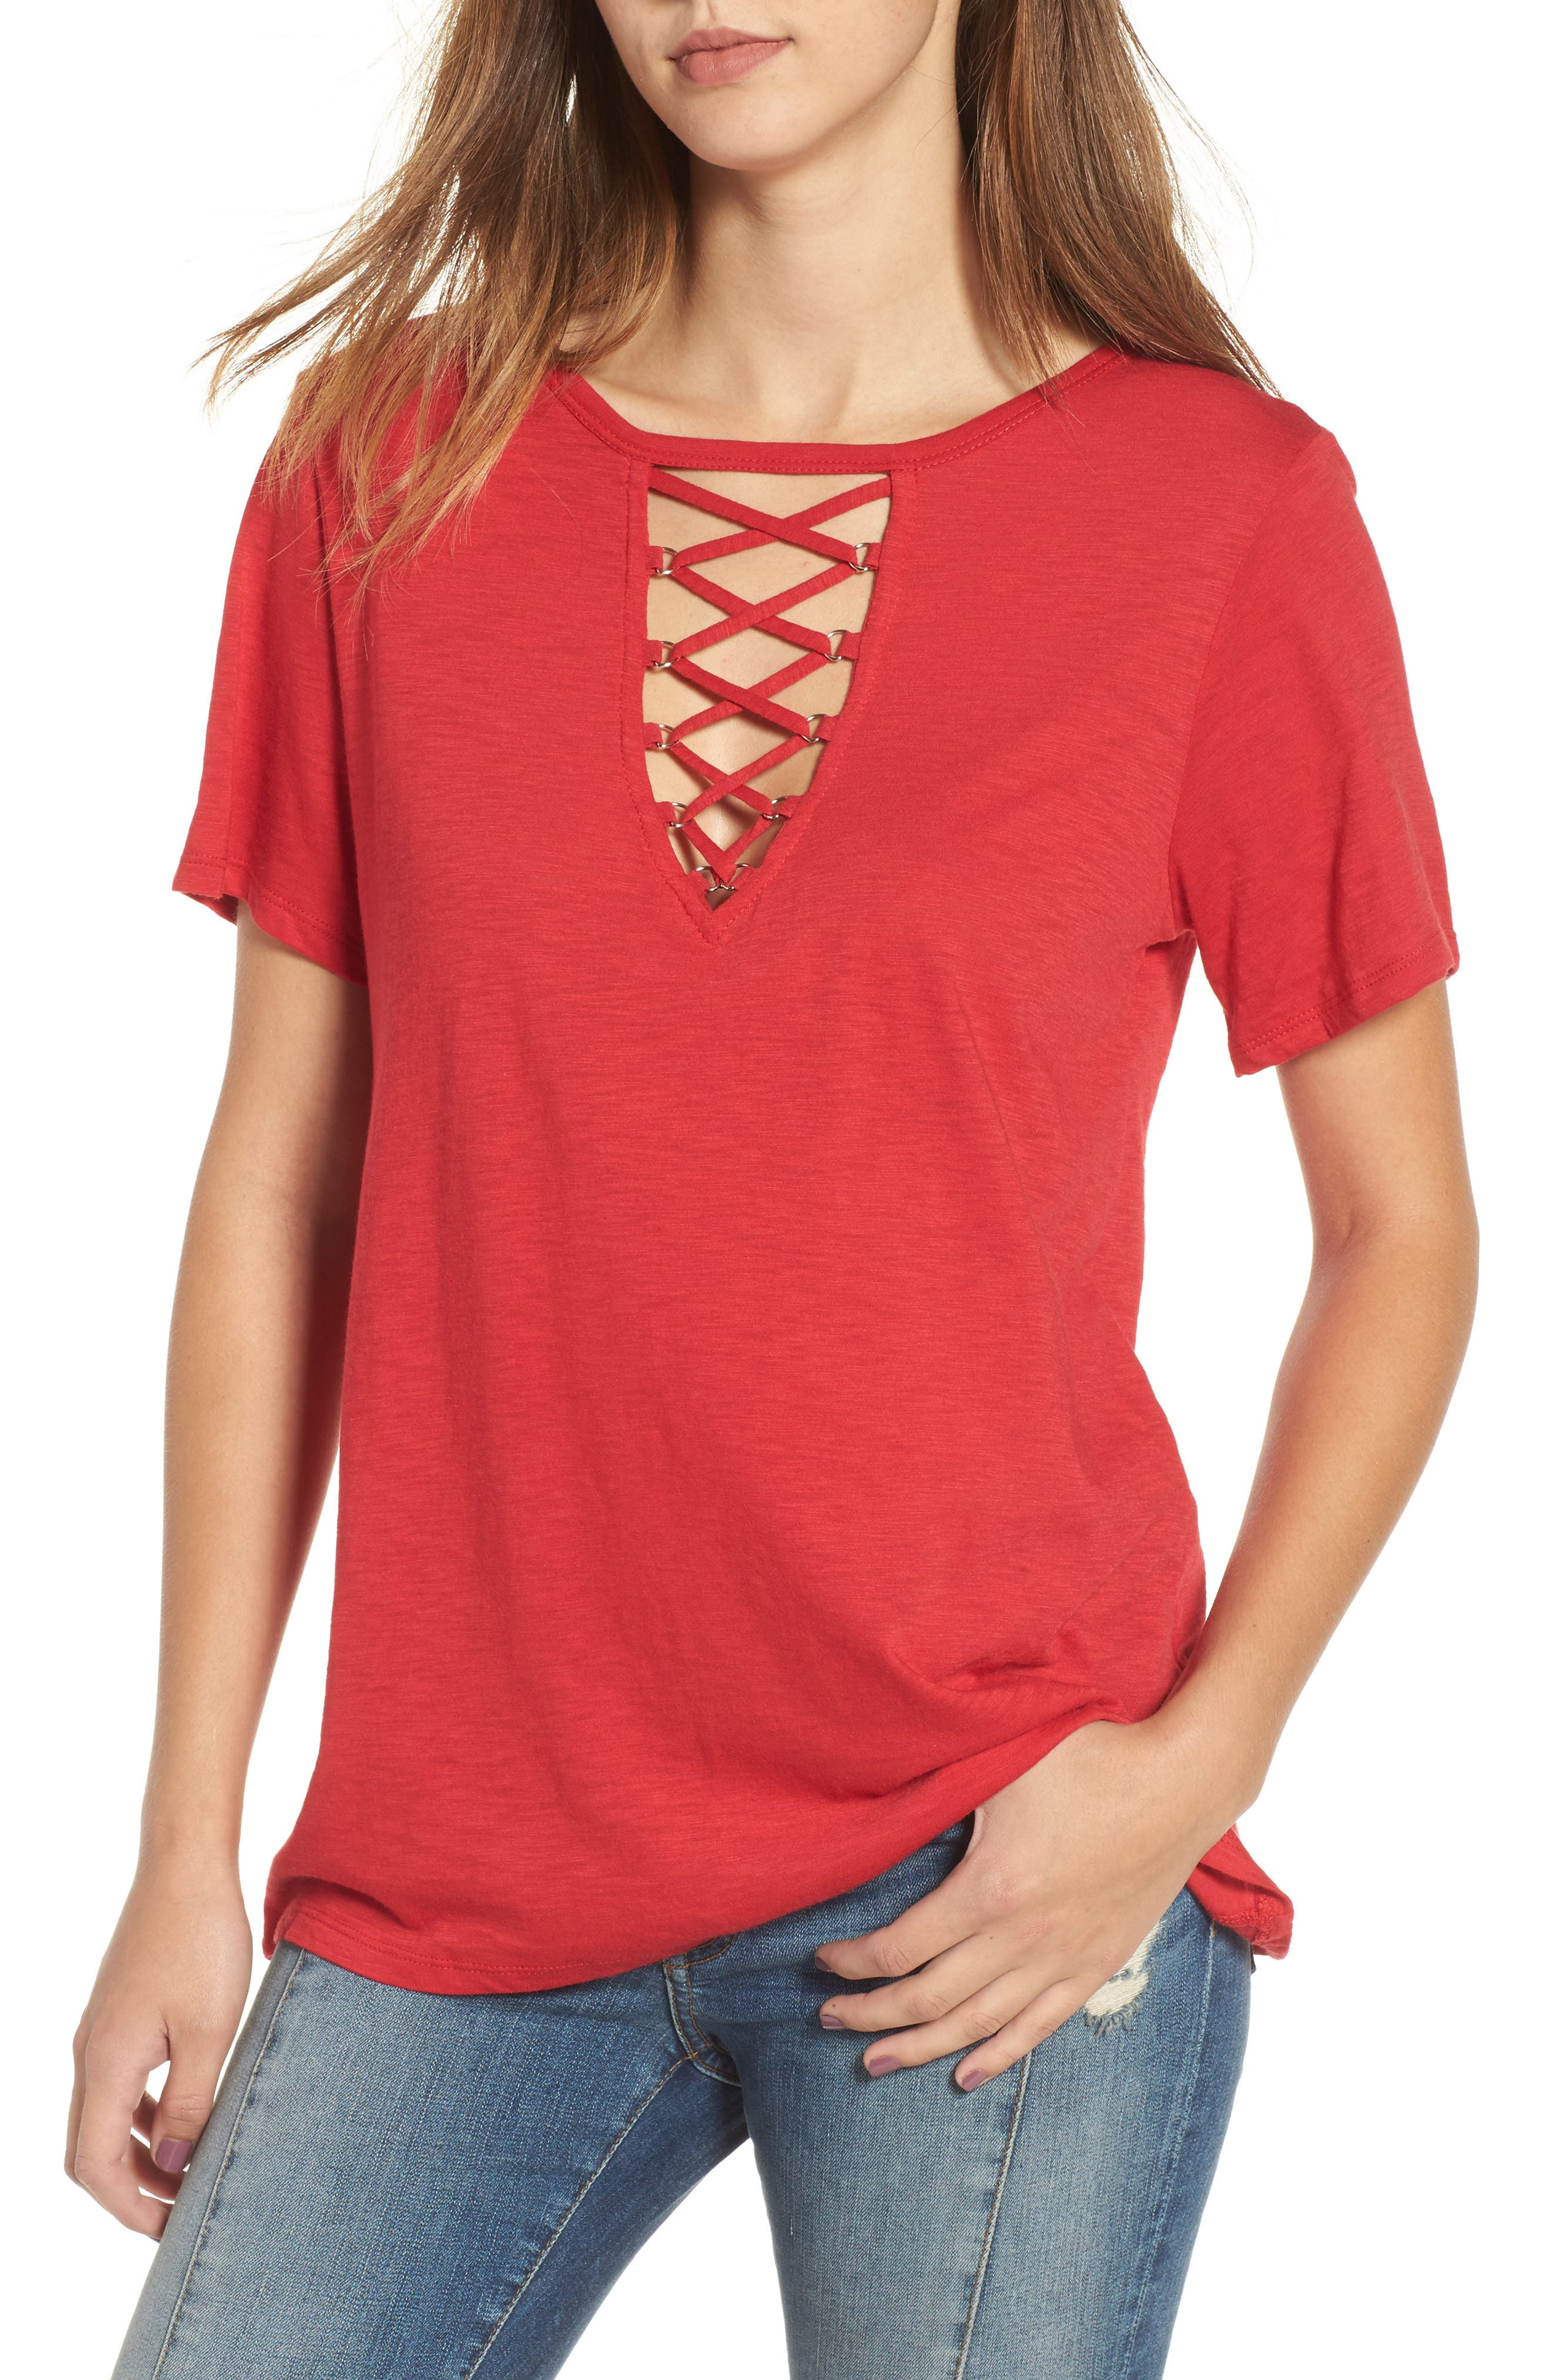 Main Image - Socialite Grommet Lace-Up Tee